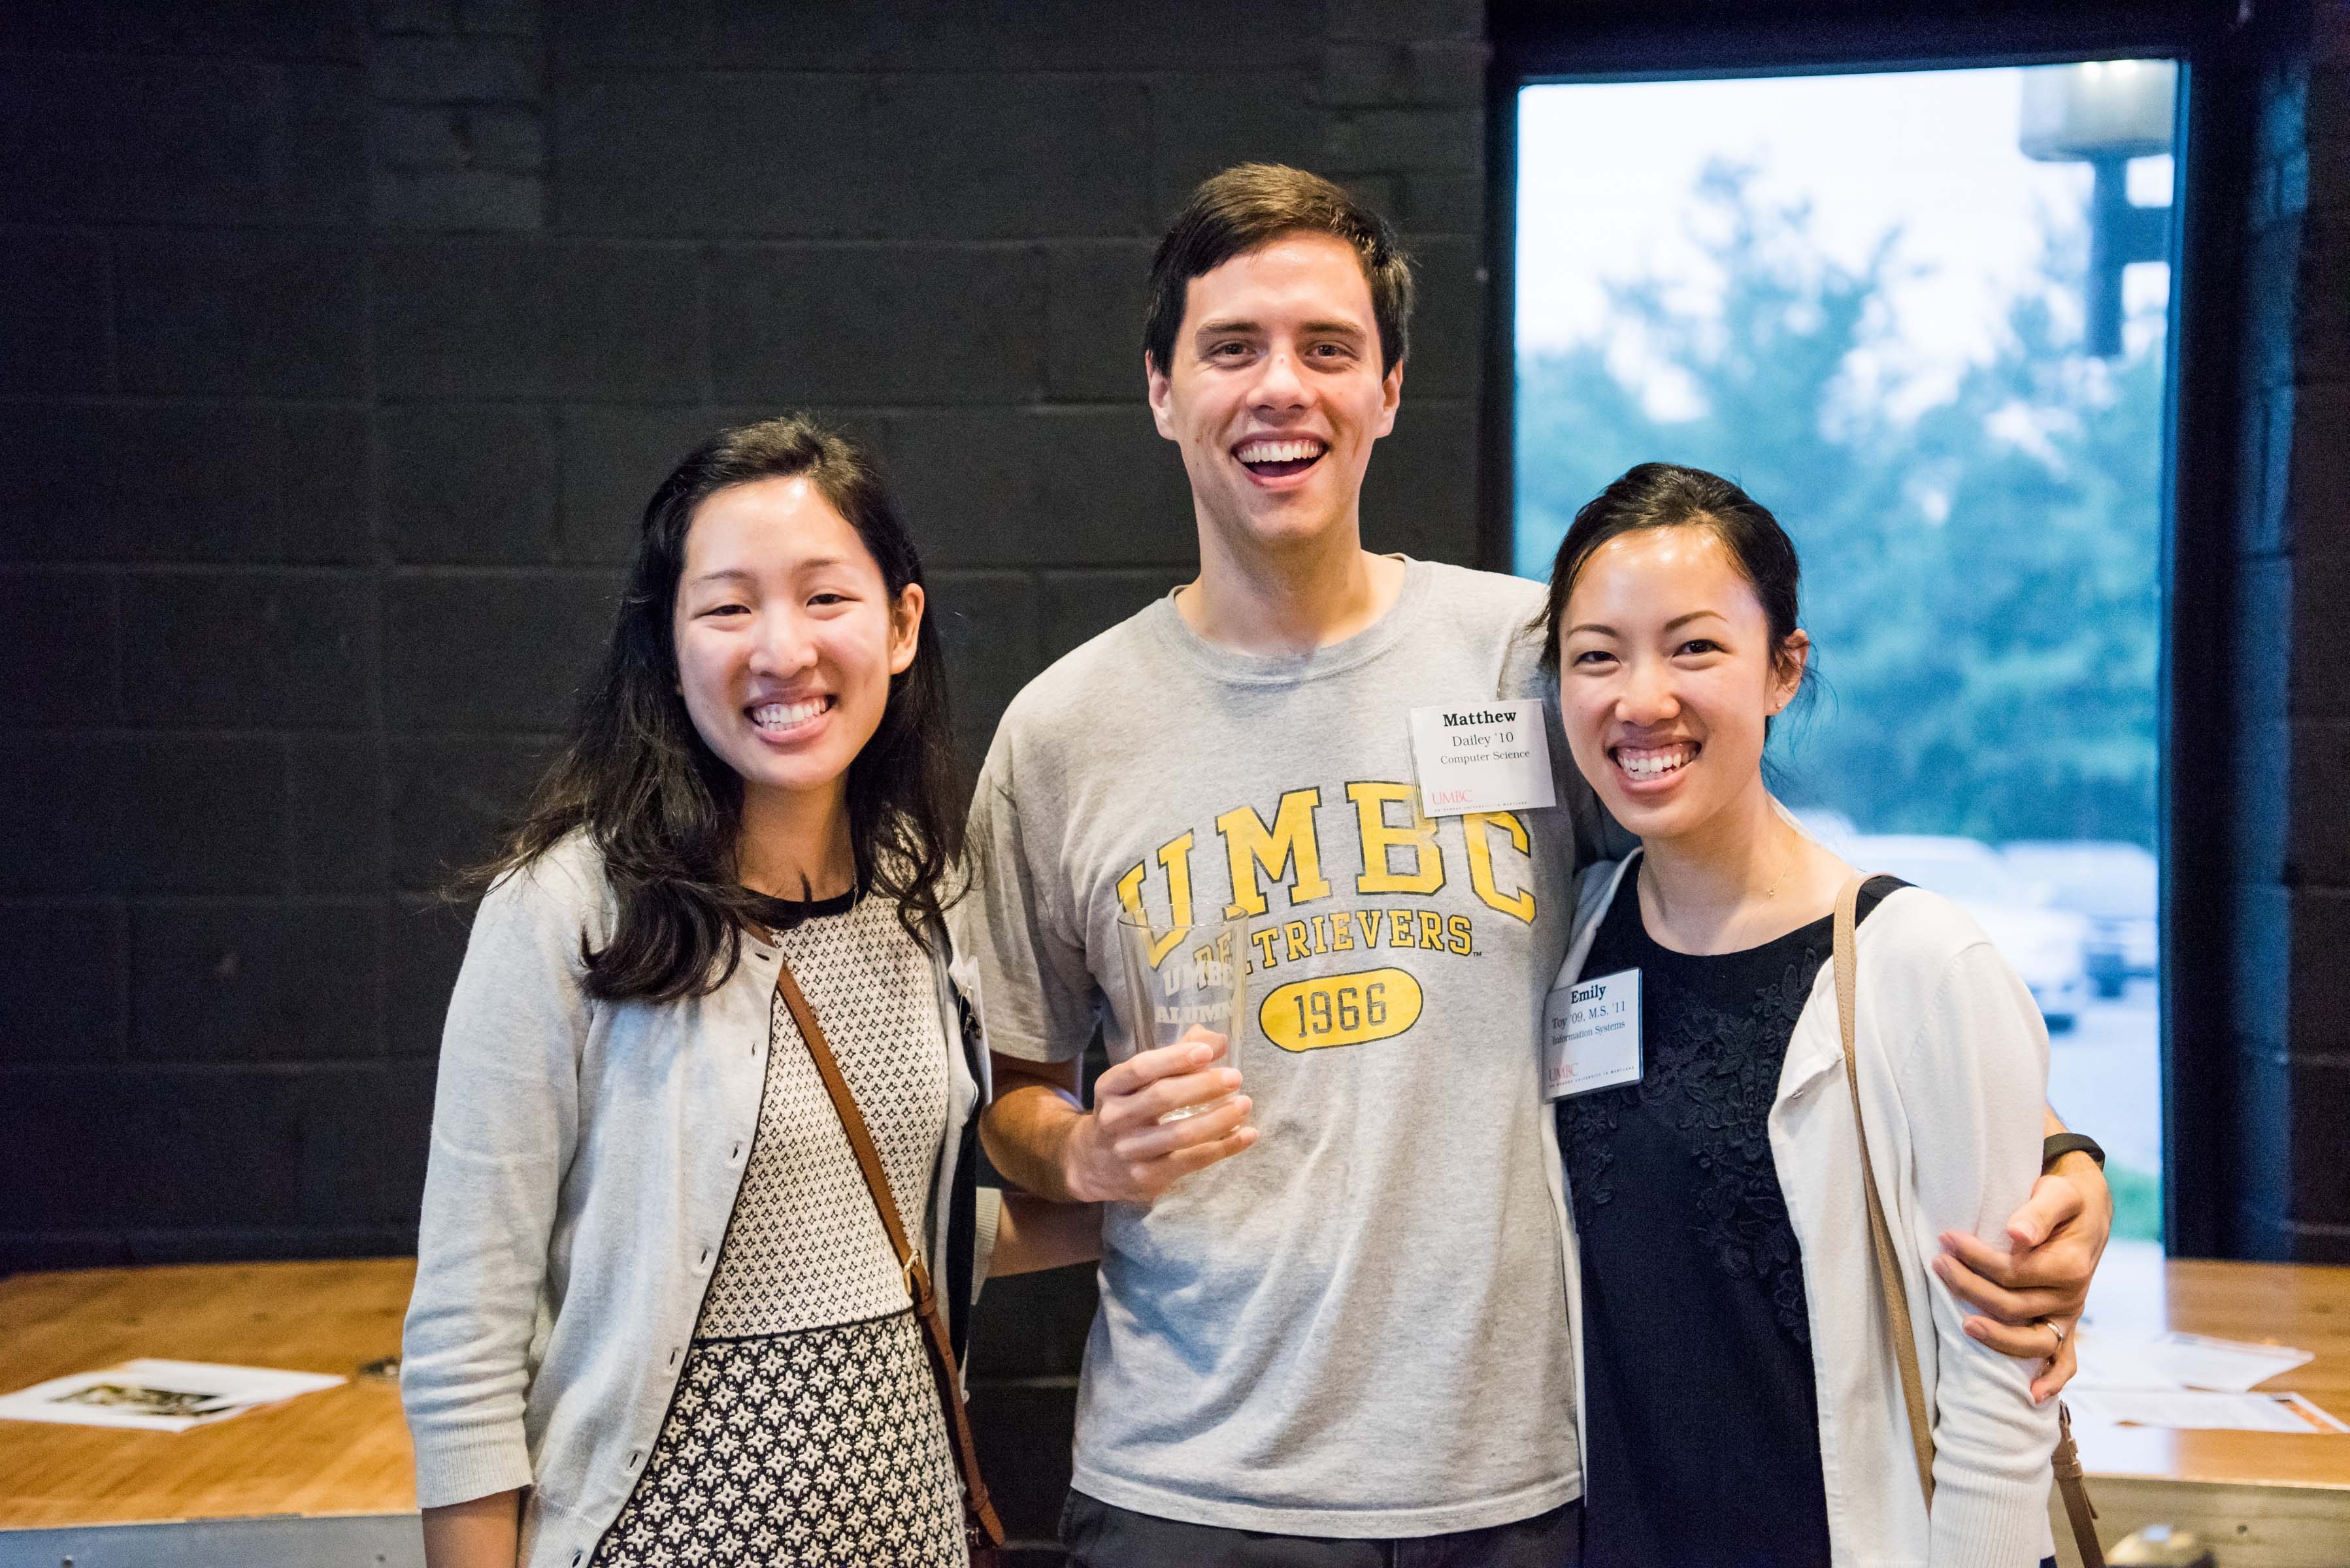 Three people with name tags pose together at Jailbreak Brewing company